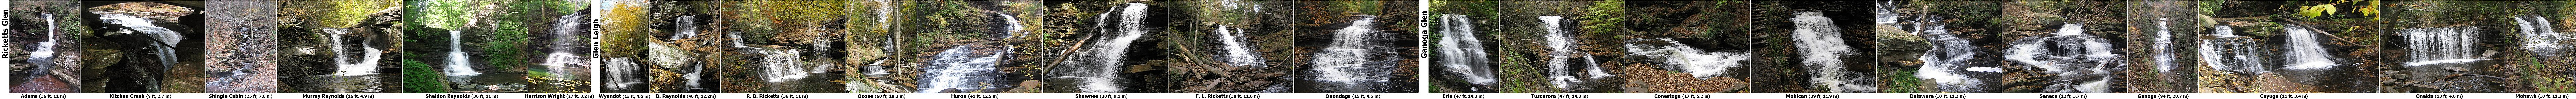 A montage of 24 photographs of waterfalls giving the name and height of each.